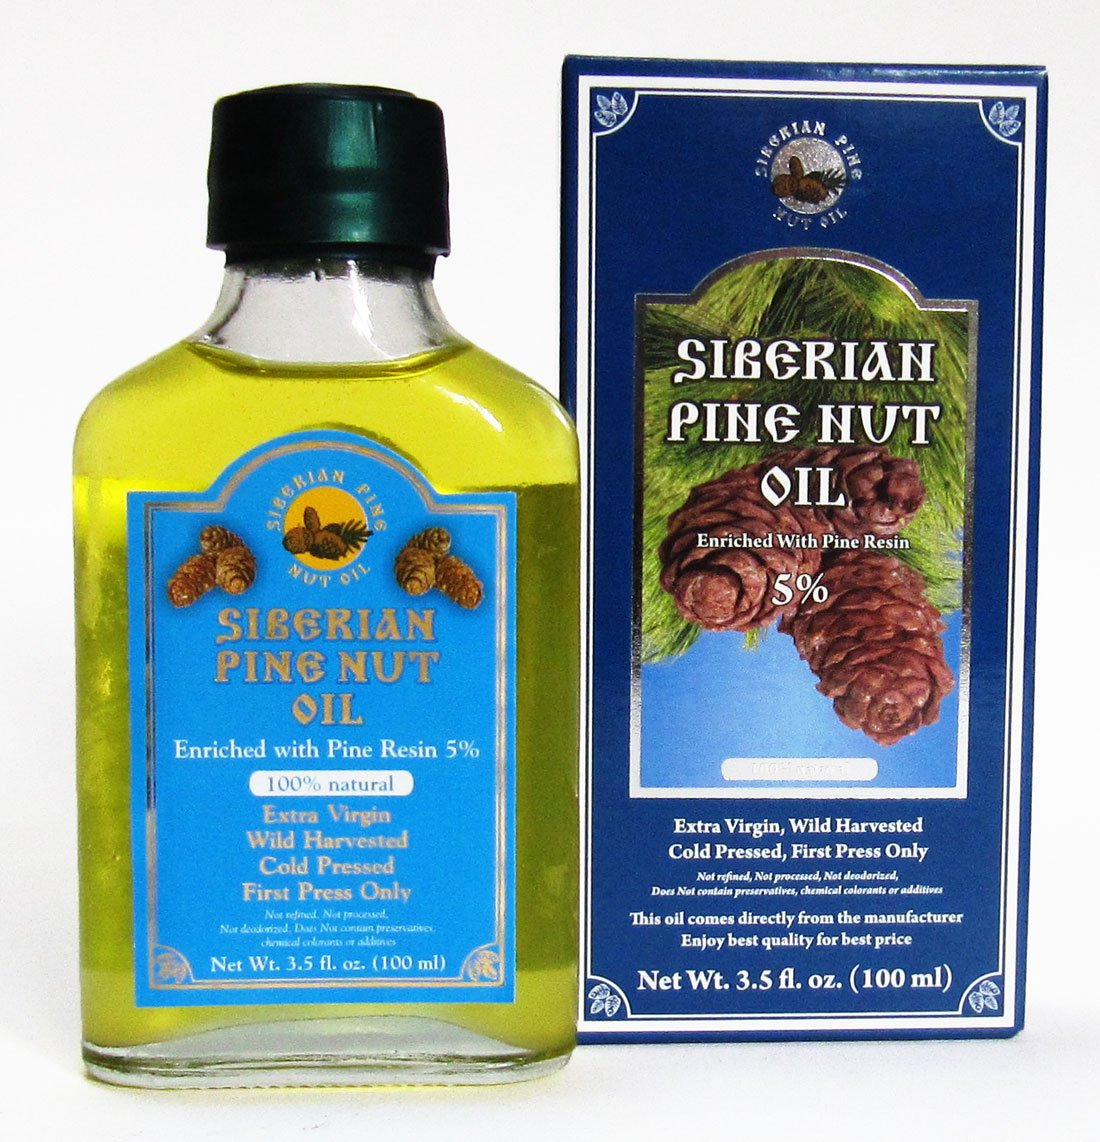 Pine Nut Oil Enriched with Pine Resin - 5%. 3.5 Fl. Oz. (100 Ml) Therapeutic Grade, Extra Virgin, Cold-pressed. 100% Natural and Authentic. Pressed From Wild Harvested, Organic, Raw Pine Nuts. by Siberian Pine Nut Oil